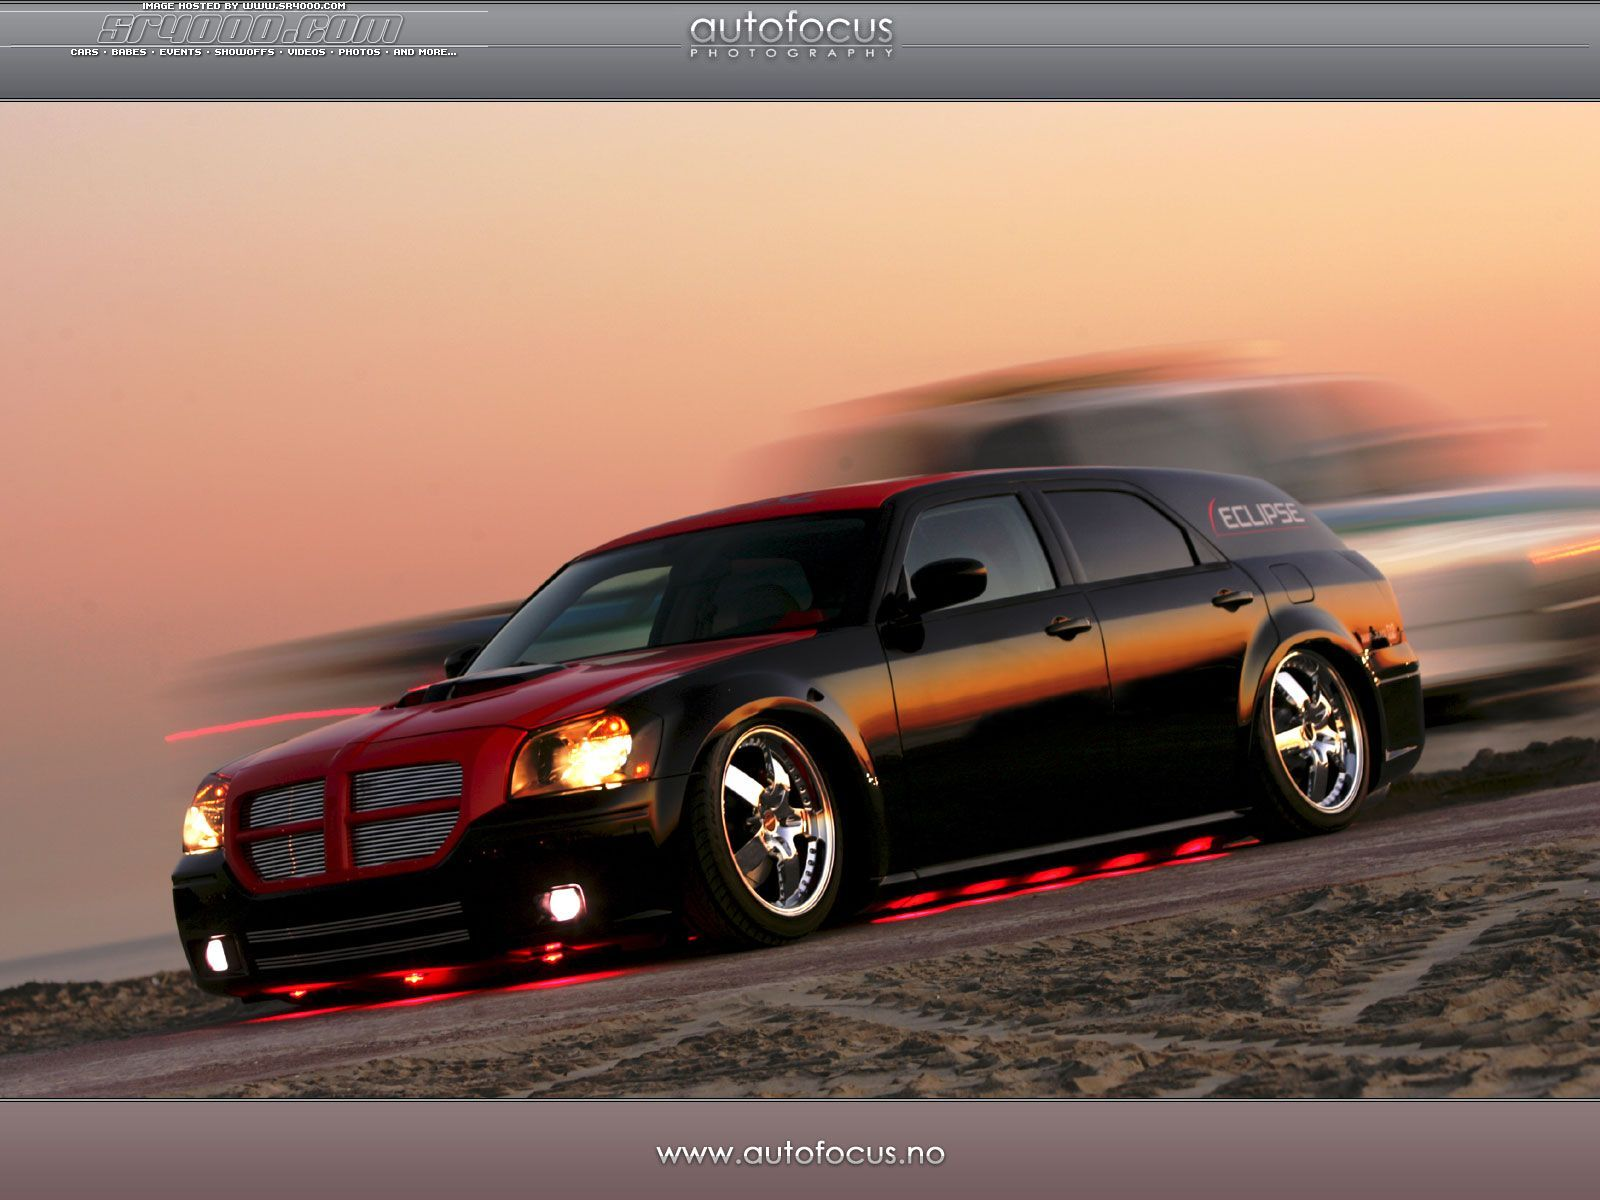 Magnum dodge magnum tuning tuning cars this is what i want my magnum to